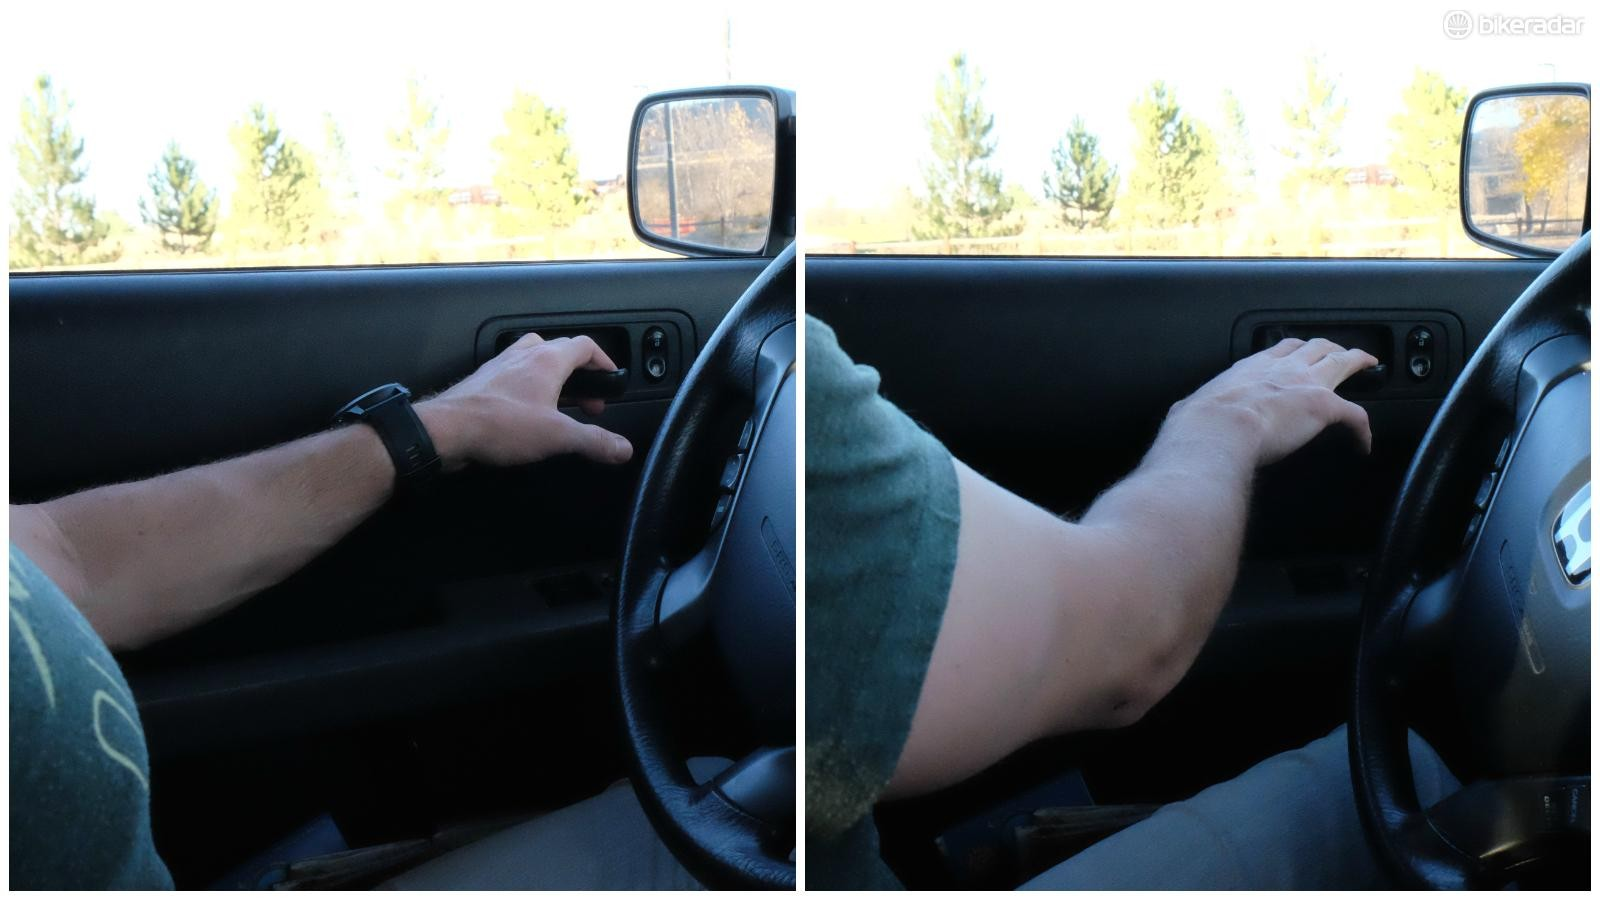 Reaching across your torso, rather than reaching for the door with your near hand, positions your body to look behind your vehicle before fully opening the door